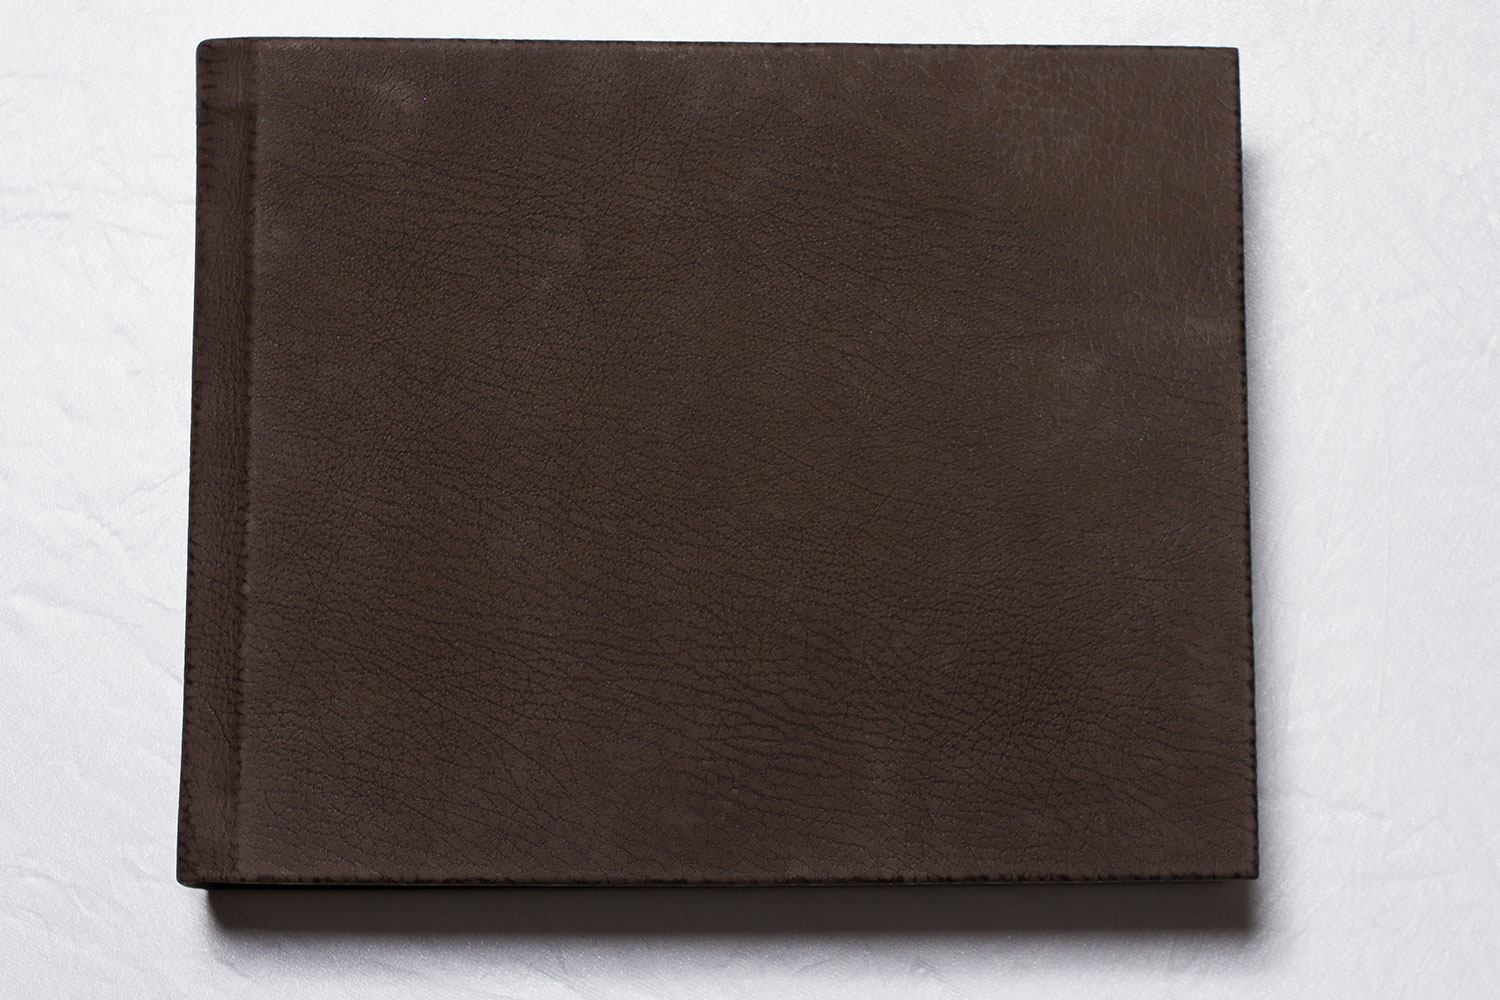 Deluxe matted album with genuine leather cover